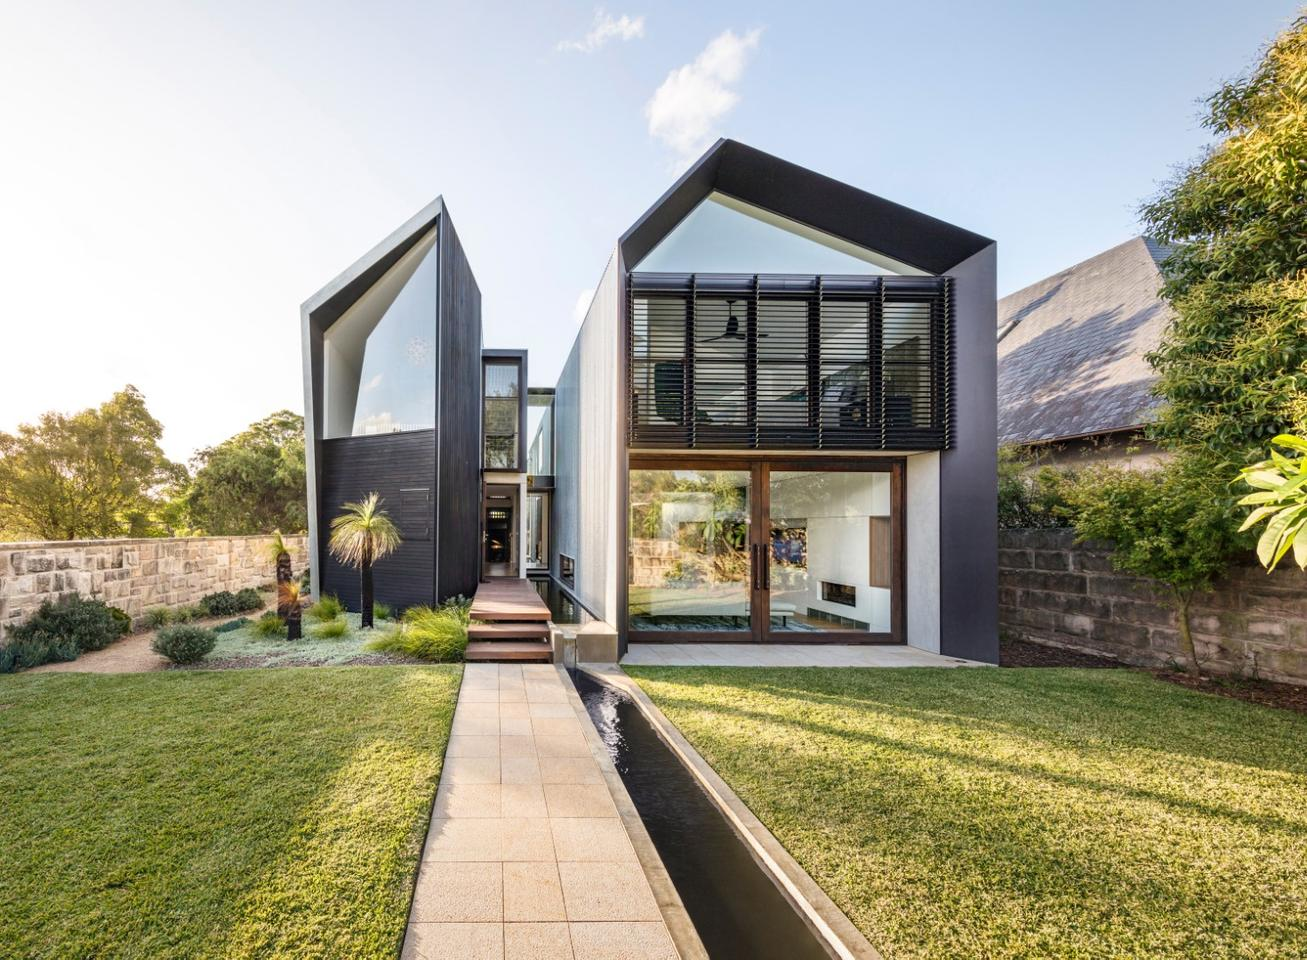 The Iron Maiden House was completed this year, and has since made the shortlist for the 2018 World Architecture Festival Awards and the 2018 Houses Awards